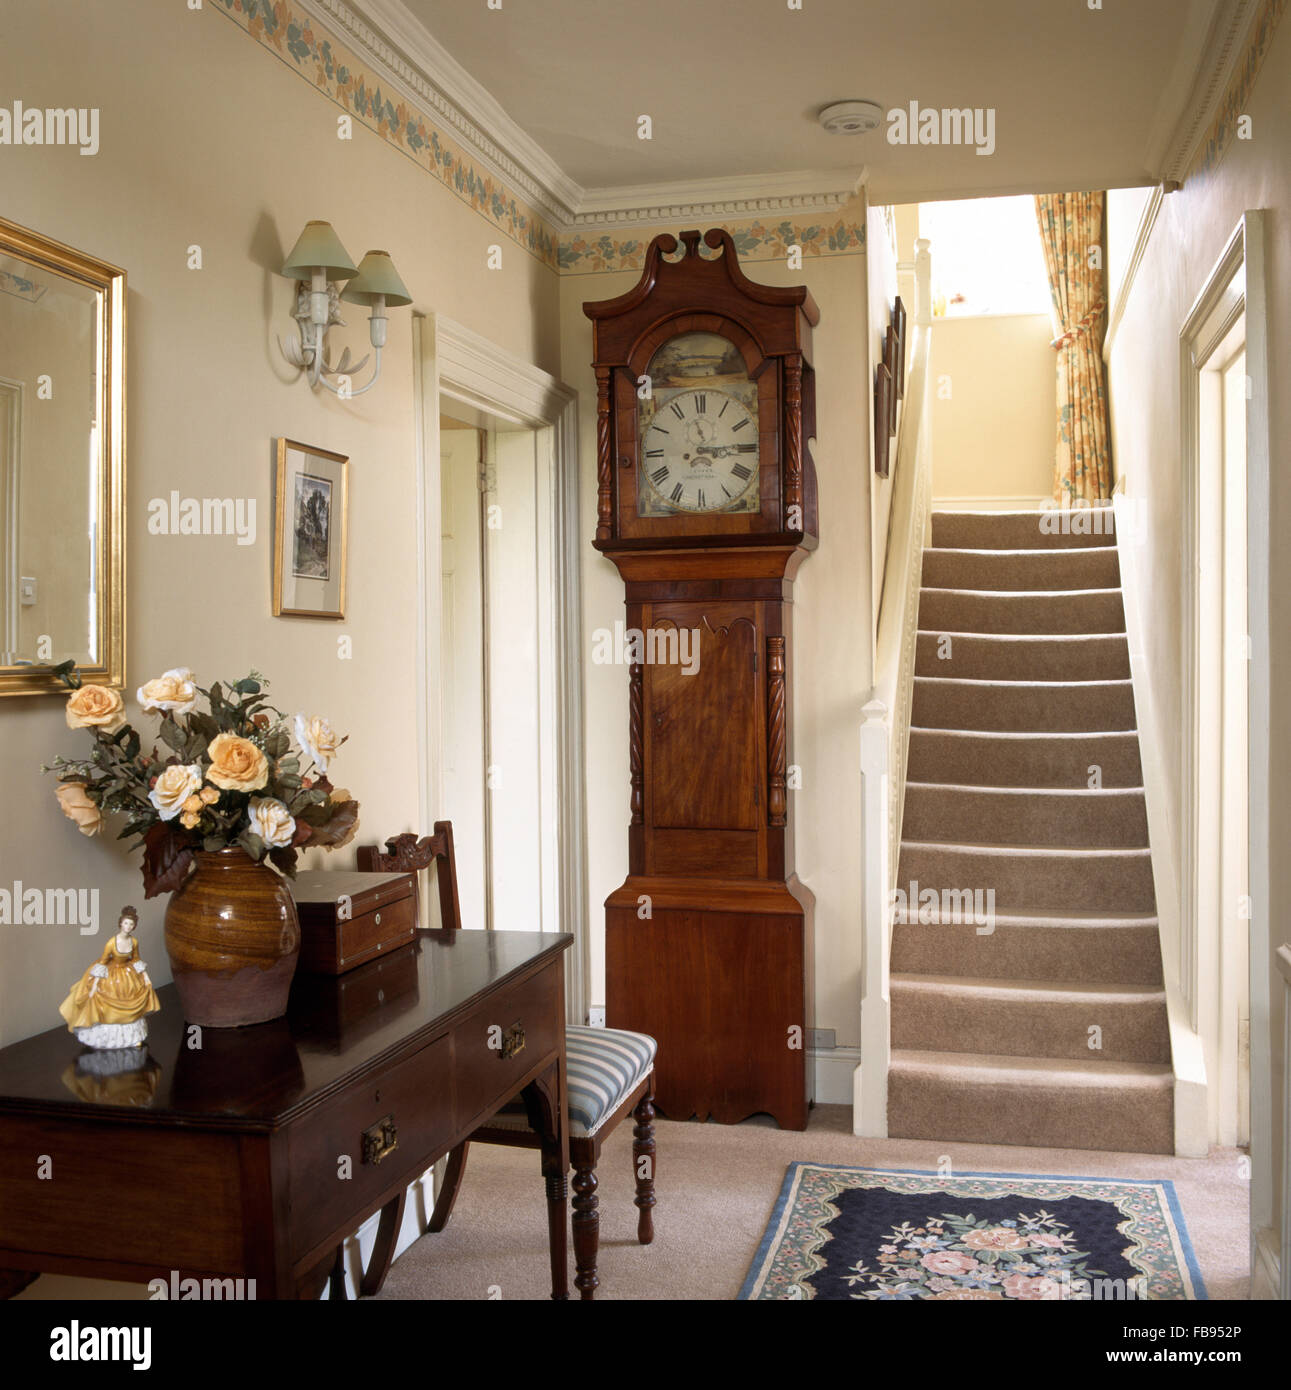 Antique long case clock in country hall with an antique console table - Stock Image